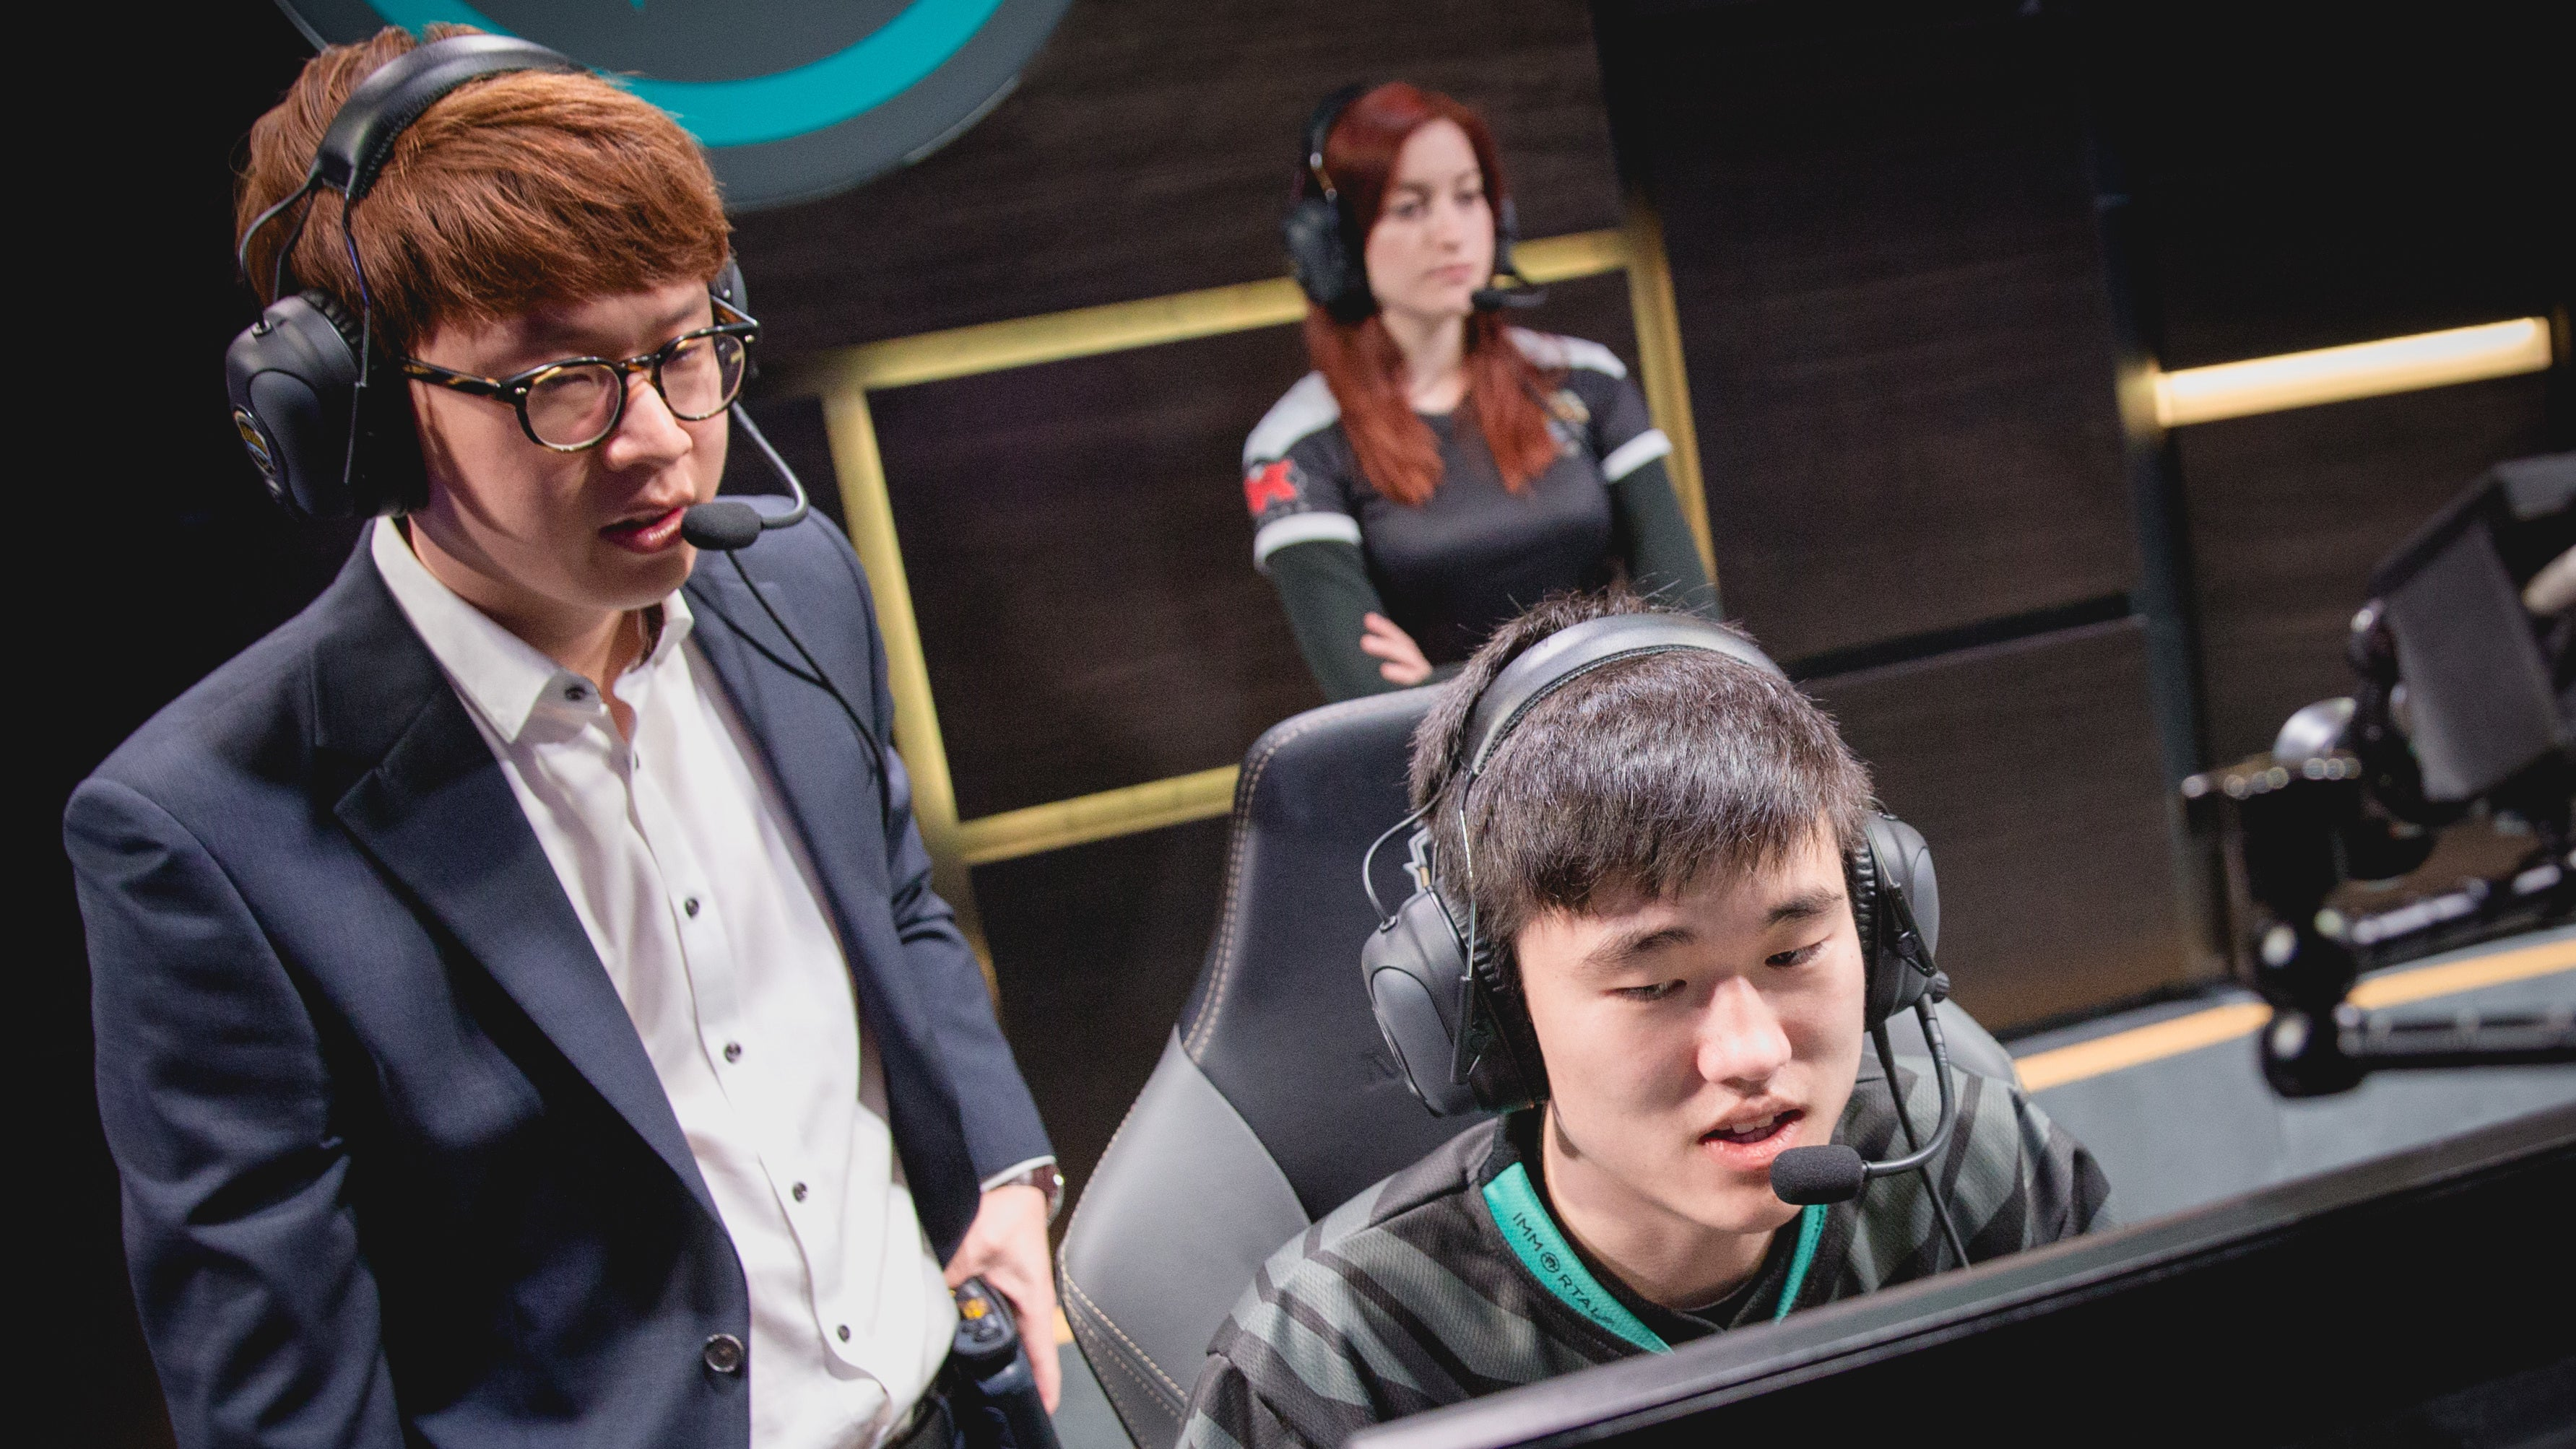 Inside The Growing Coaching Industry Supporting League Of Legends Teams